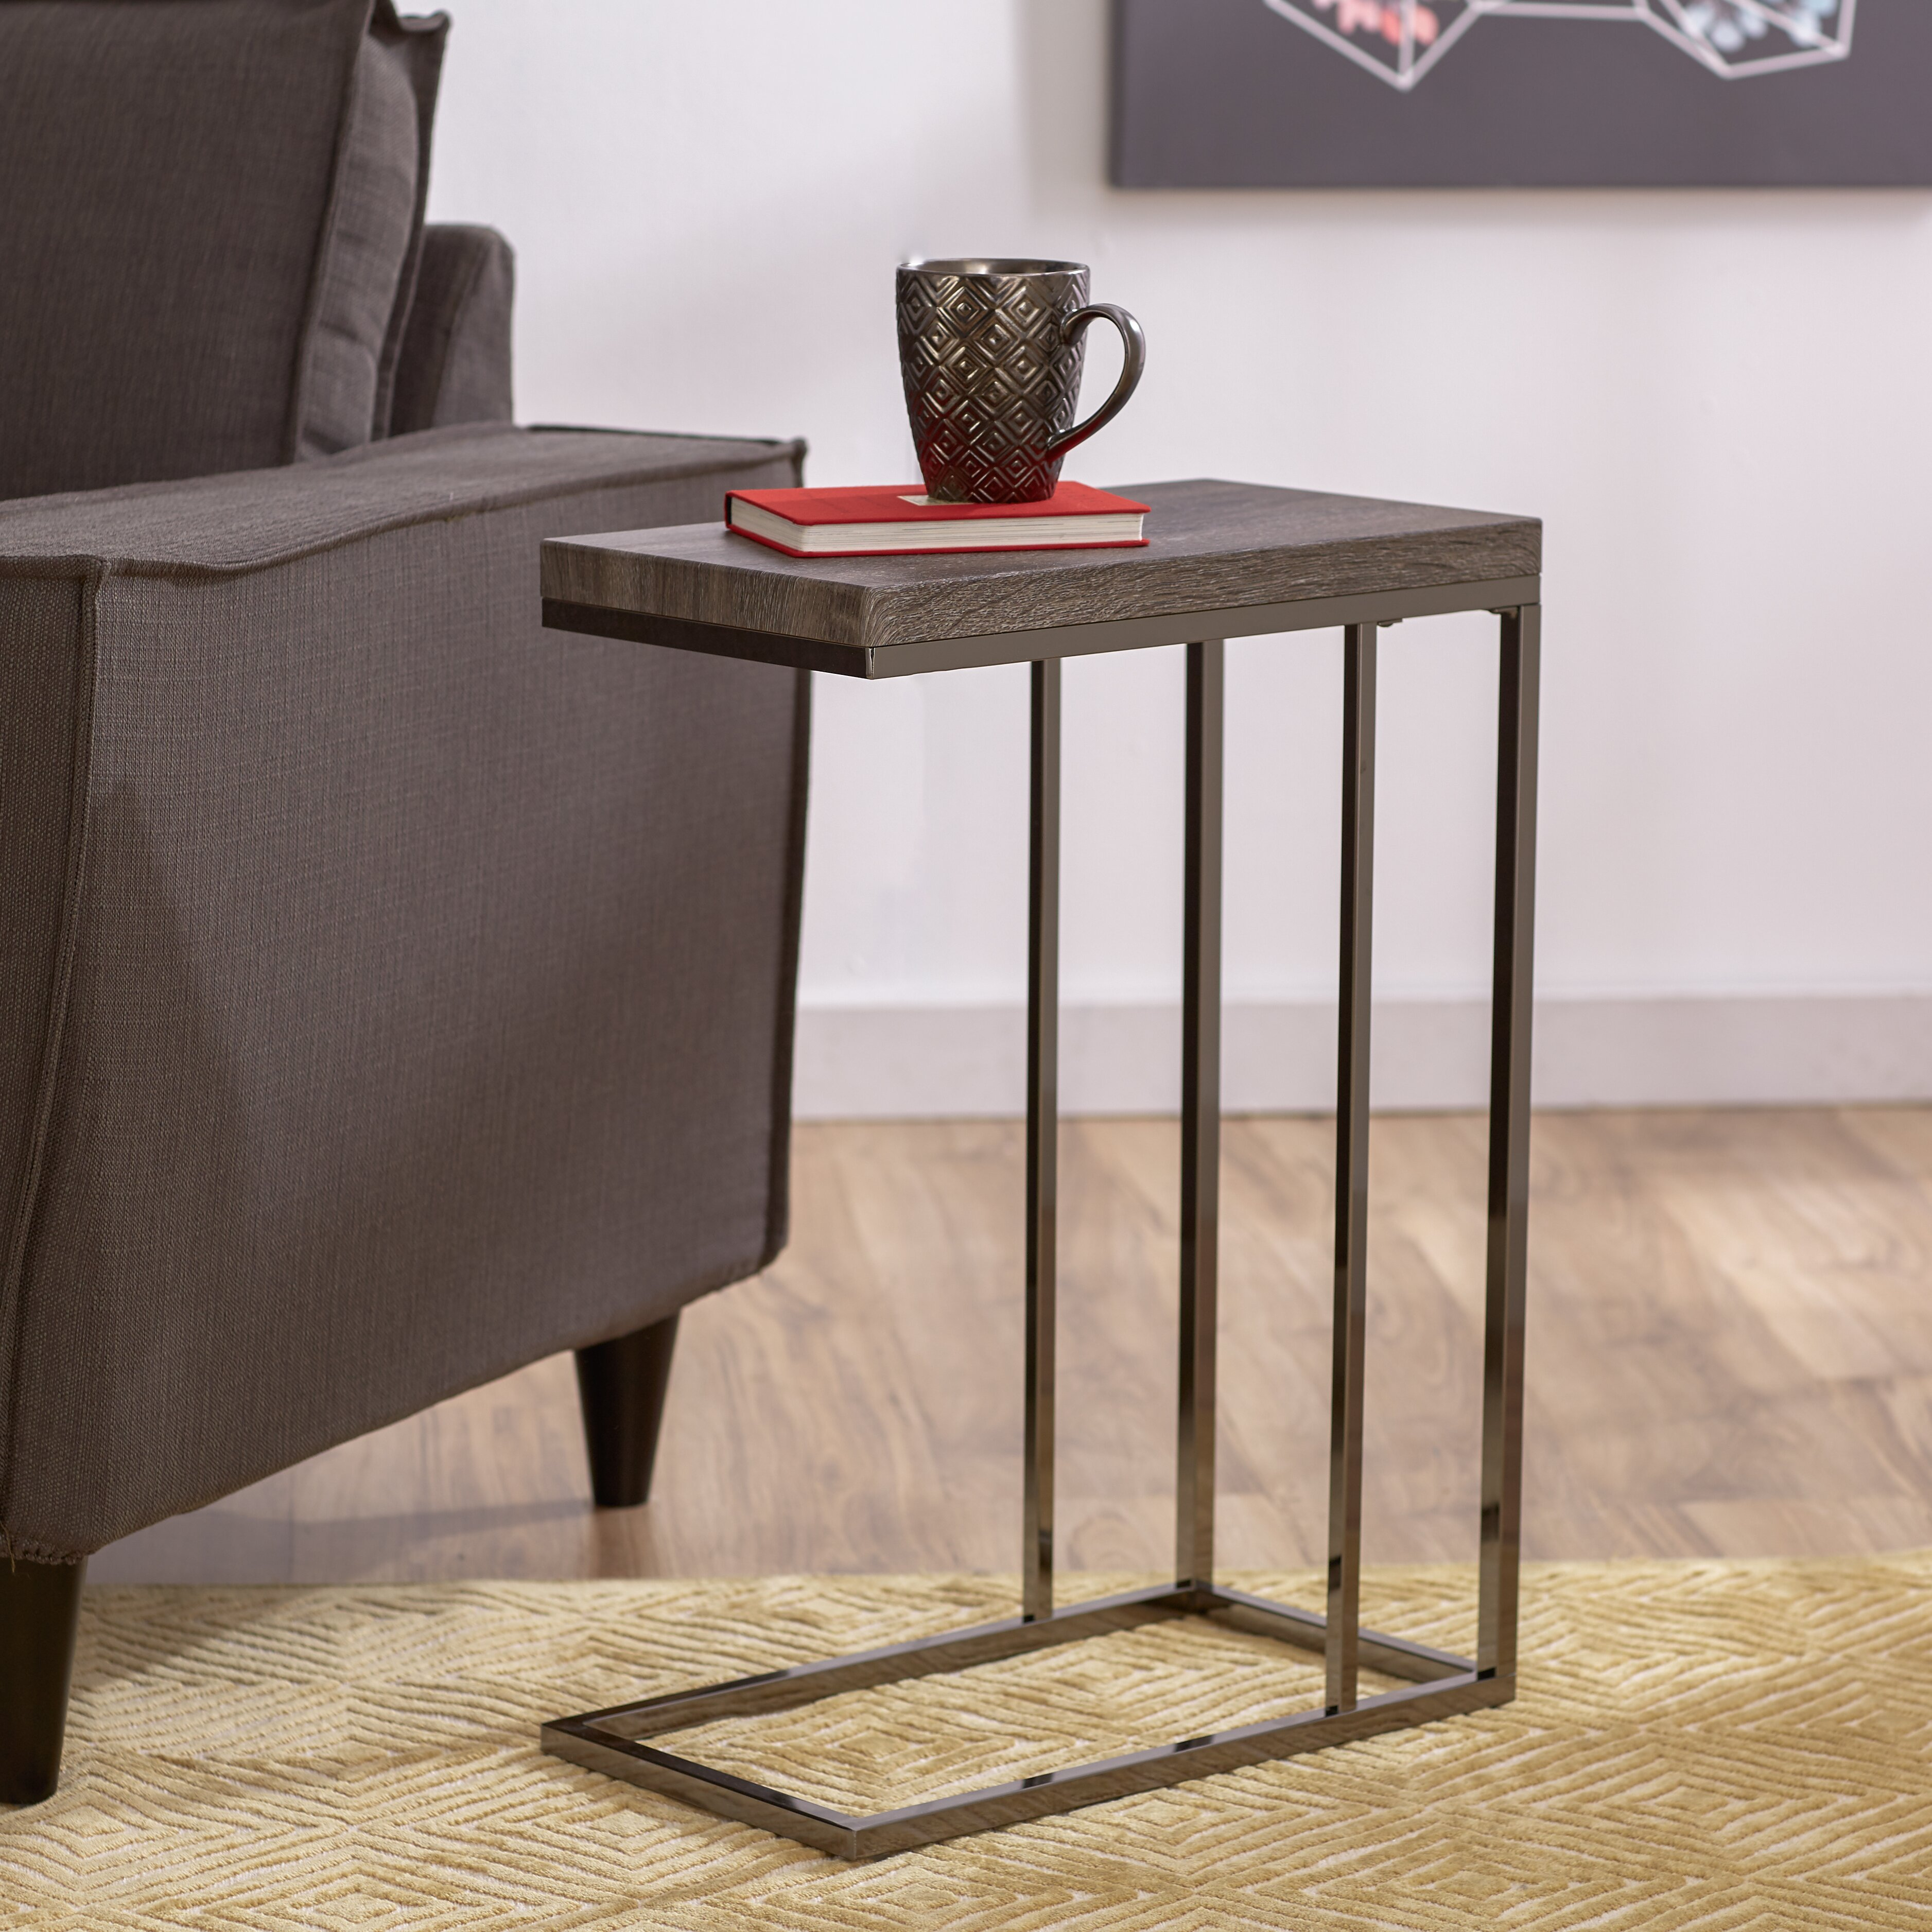 Wayfair Table: Philippos Chairside End Table